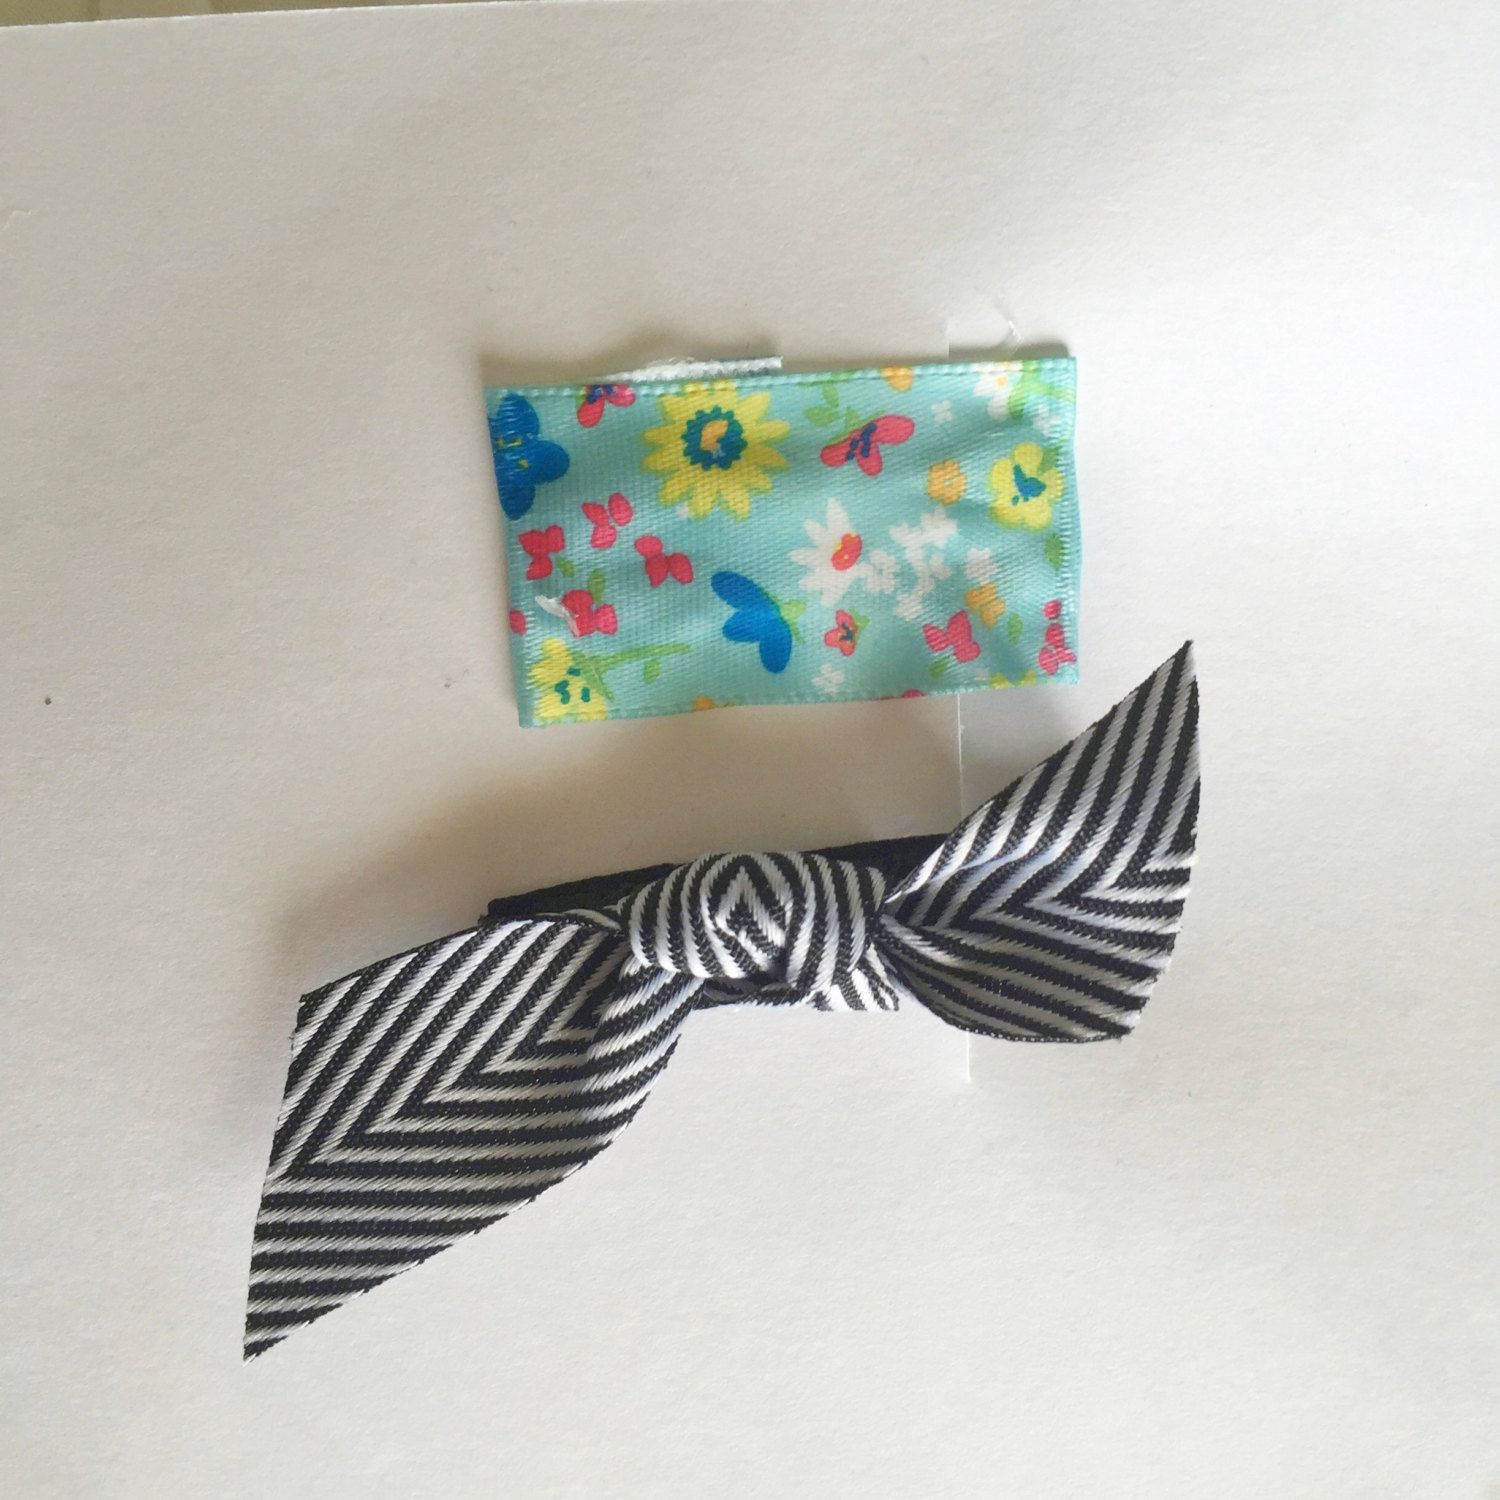 Set of 2 clips- 1 alligator and 1 snap clip by doodlebugdesignsco on Etsy